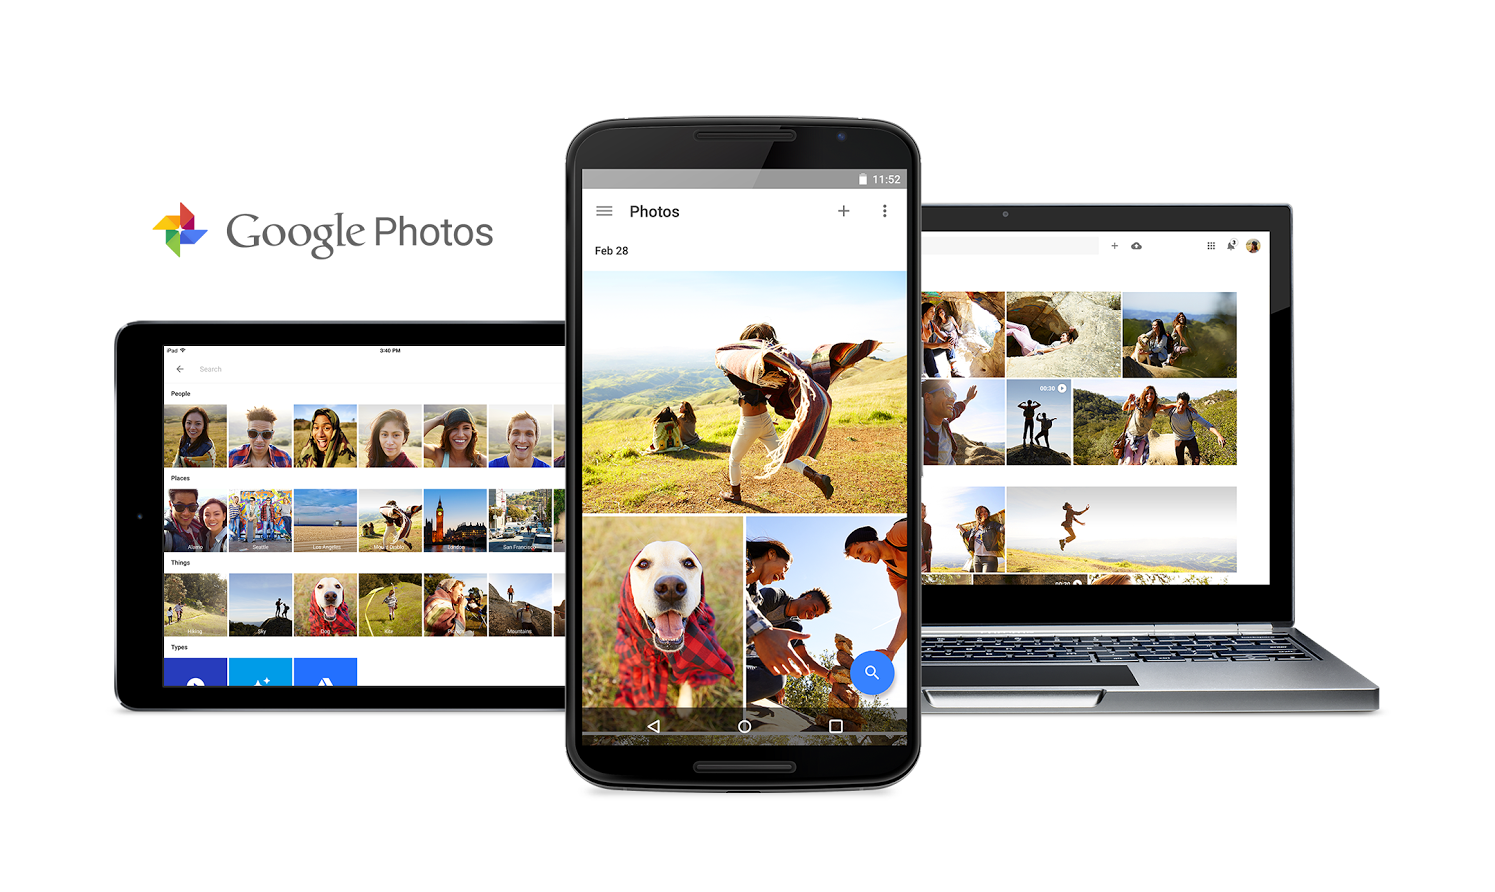 3. If you haven't already, download Google Photos to store all your photos in the cloud, then delete them all from your phone.